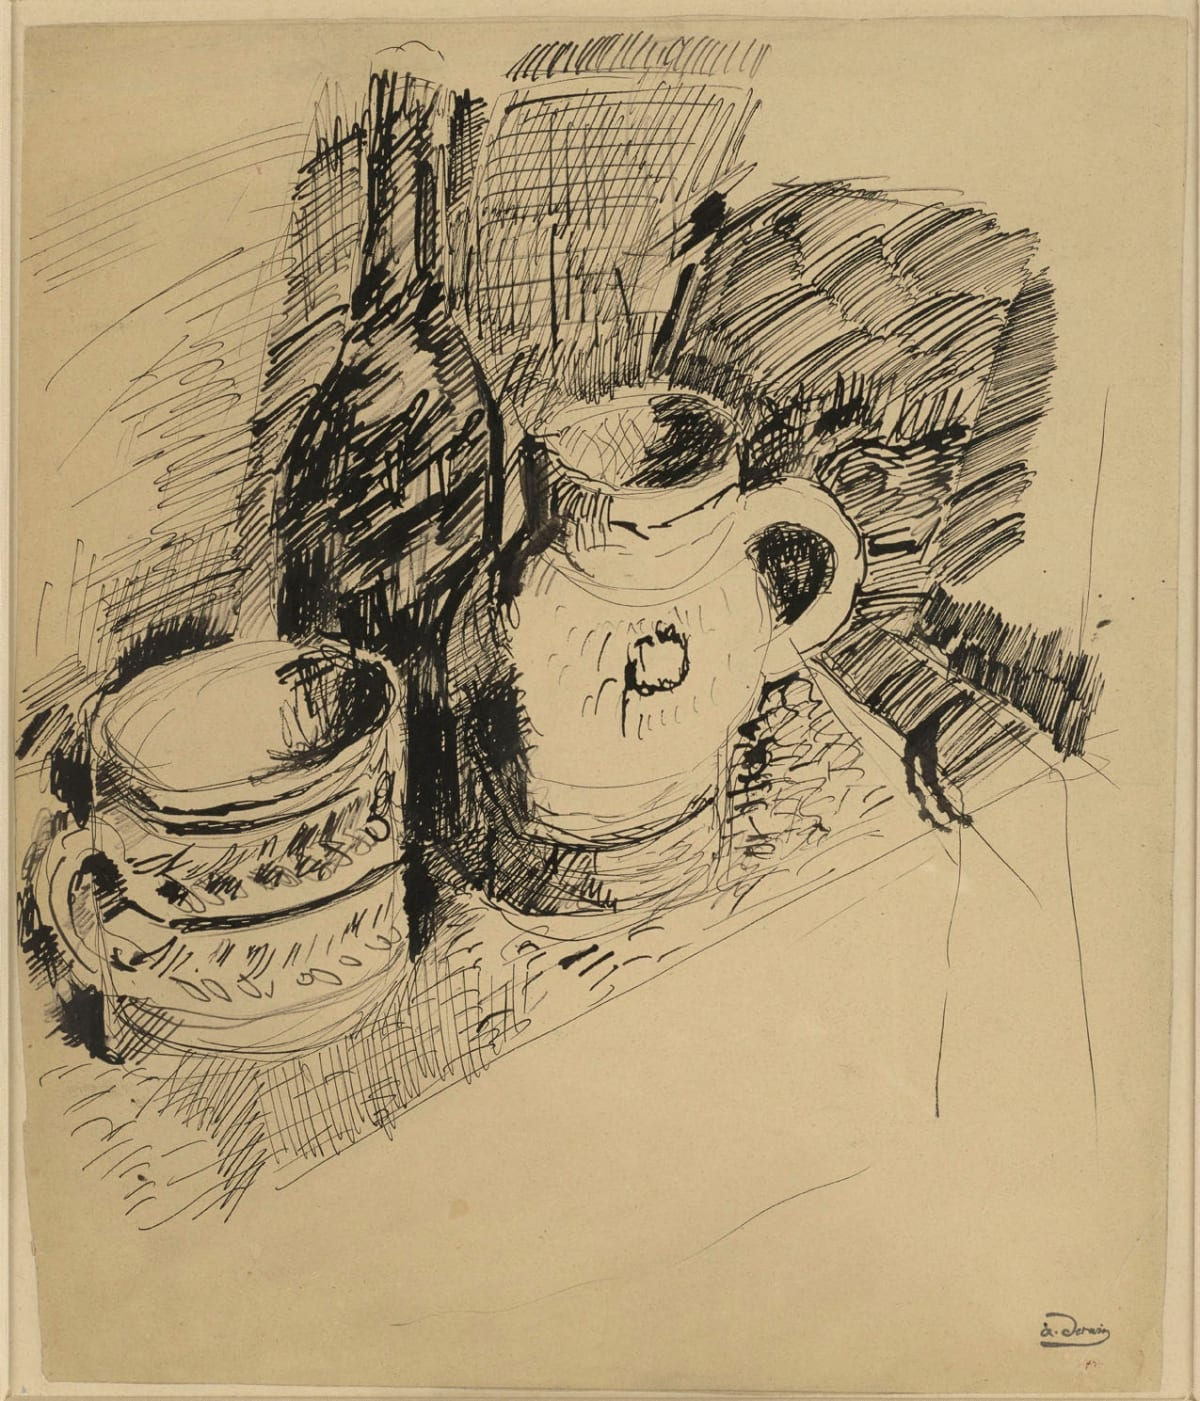 André Derain Nature morte, c. 1904 Pen and black ink on paper 38 x 32.1 cm 15 x 12 5/8 inches Stamped lower right a.derain